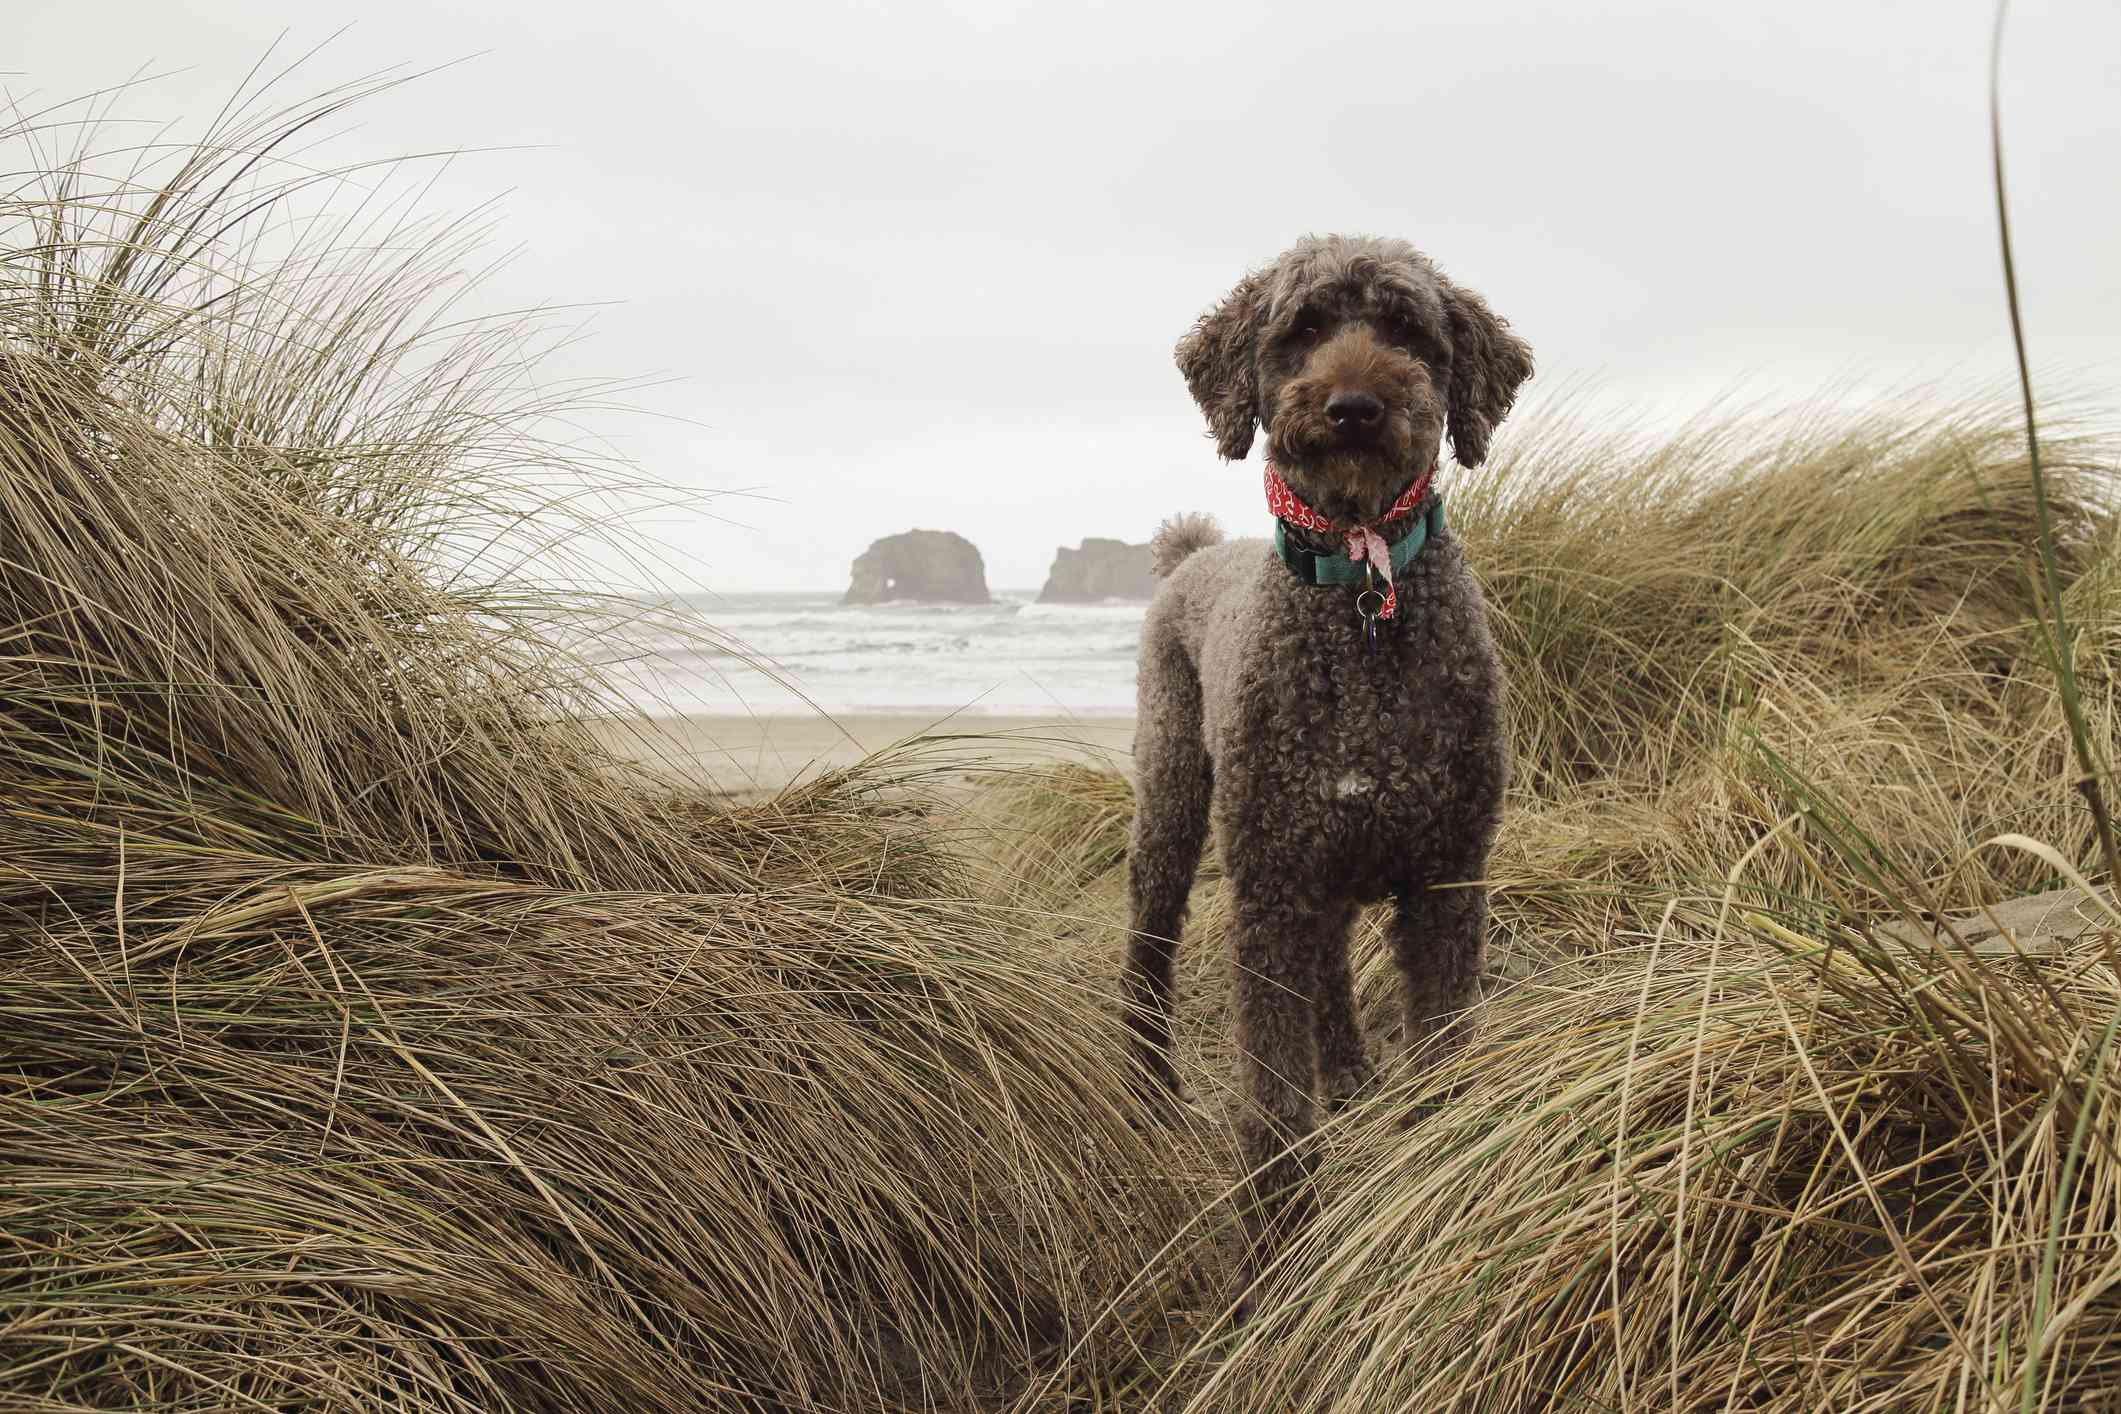 Brown standard poodle standing in the dunes in front of the sea